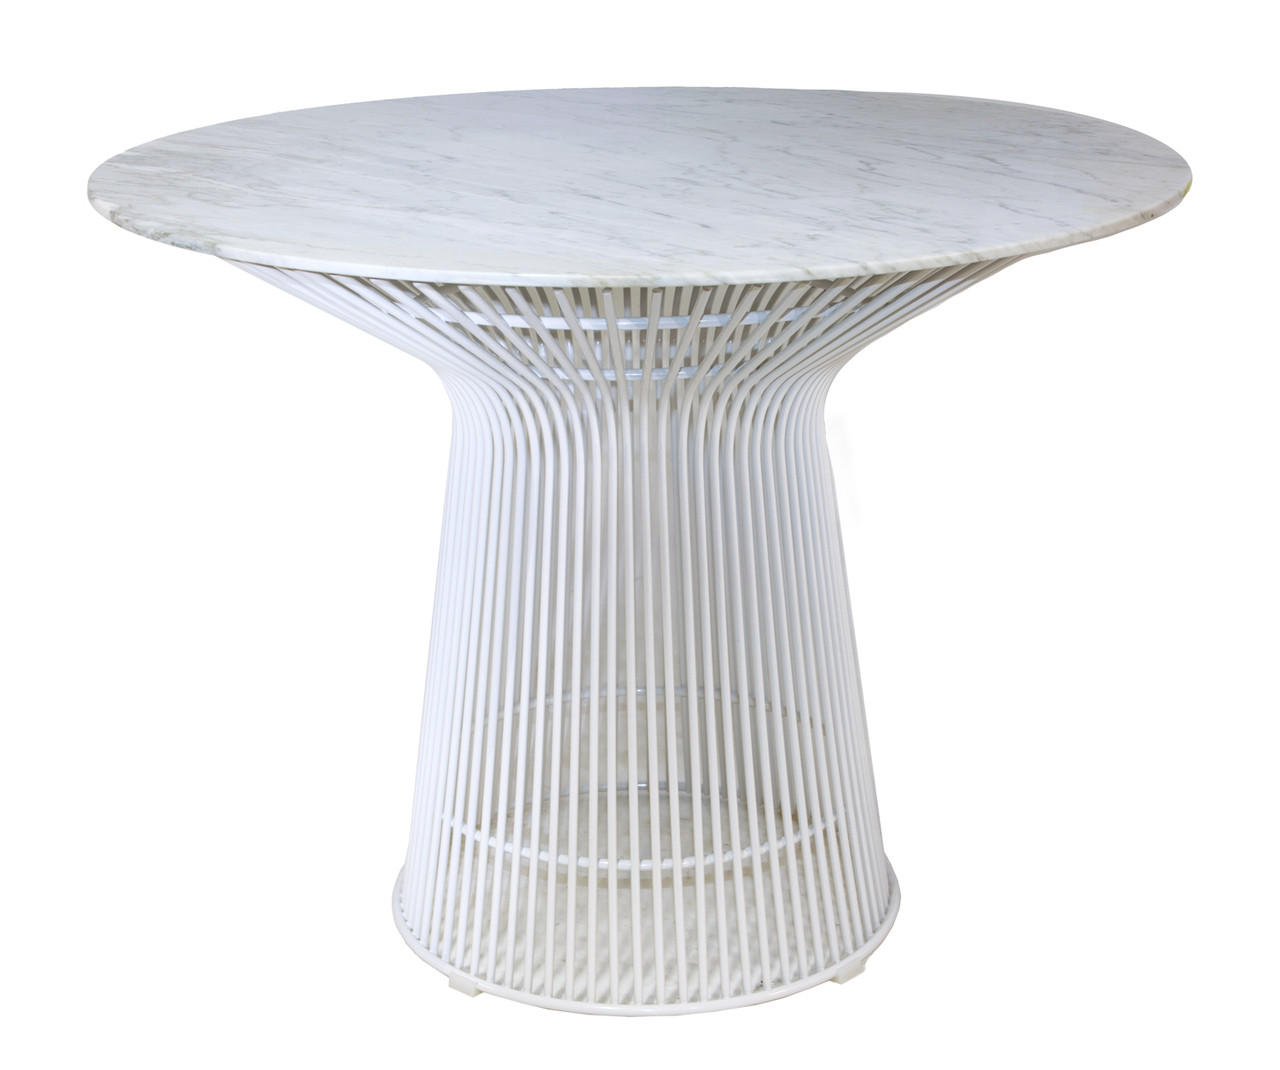 Replica Warren Platner - Wire Dining Table - White Powdercoated - Marble Top - 100cm